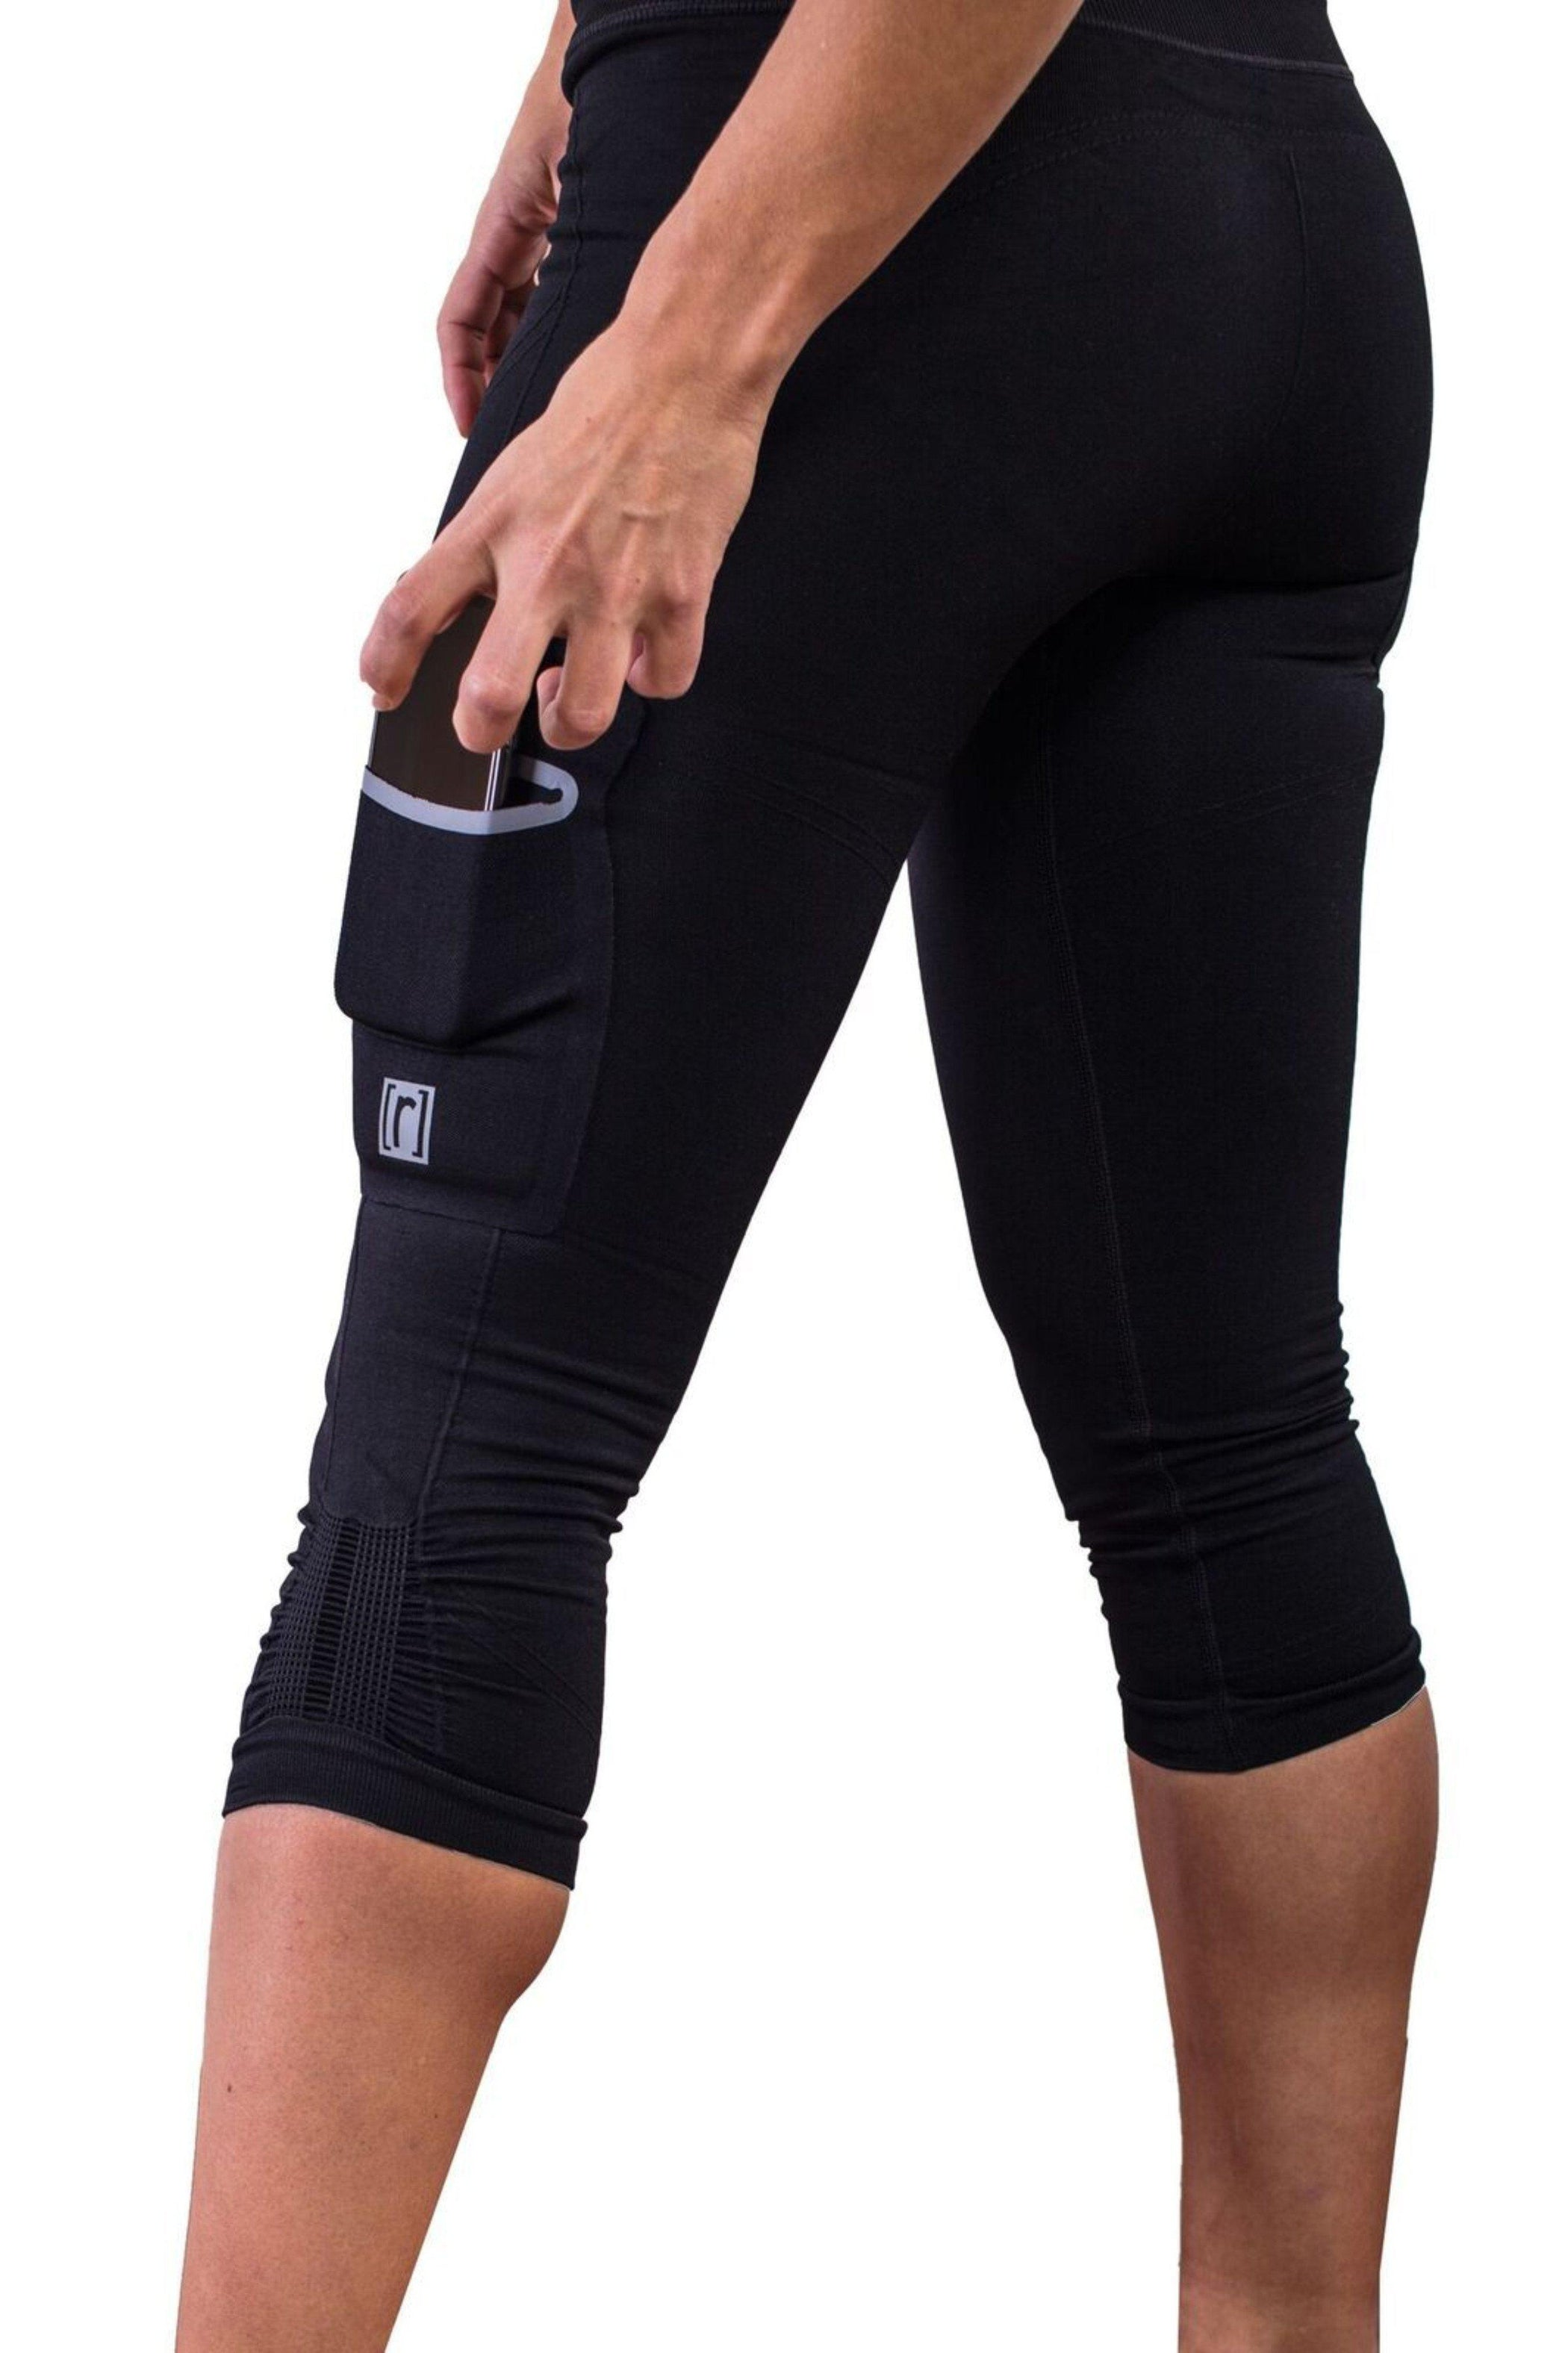 Black compression pant with patented fully seamless front and pockets. Pocket detail.